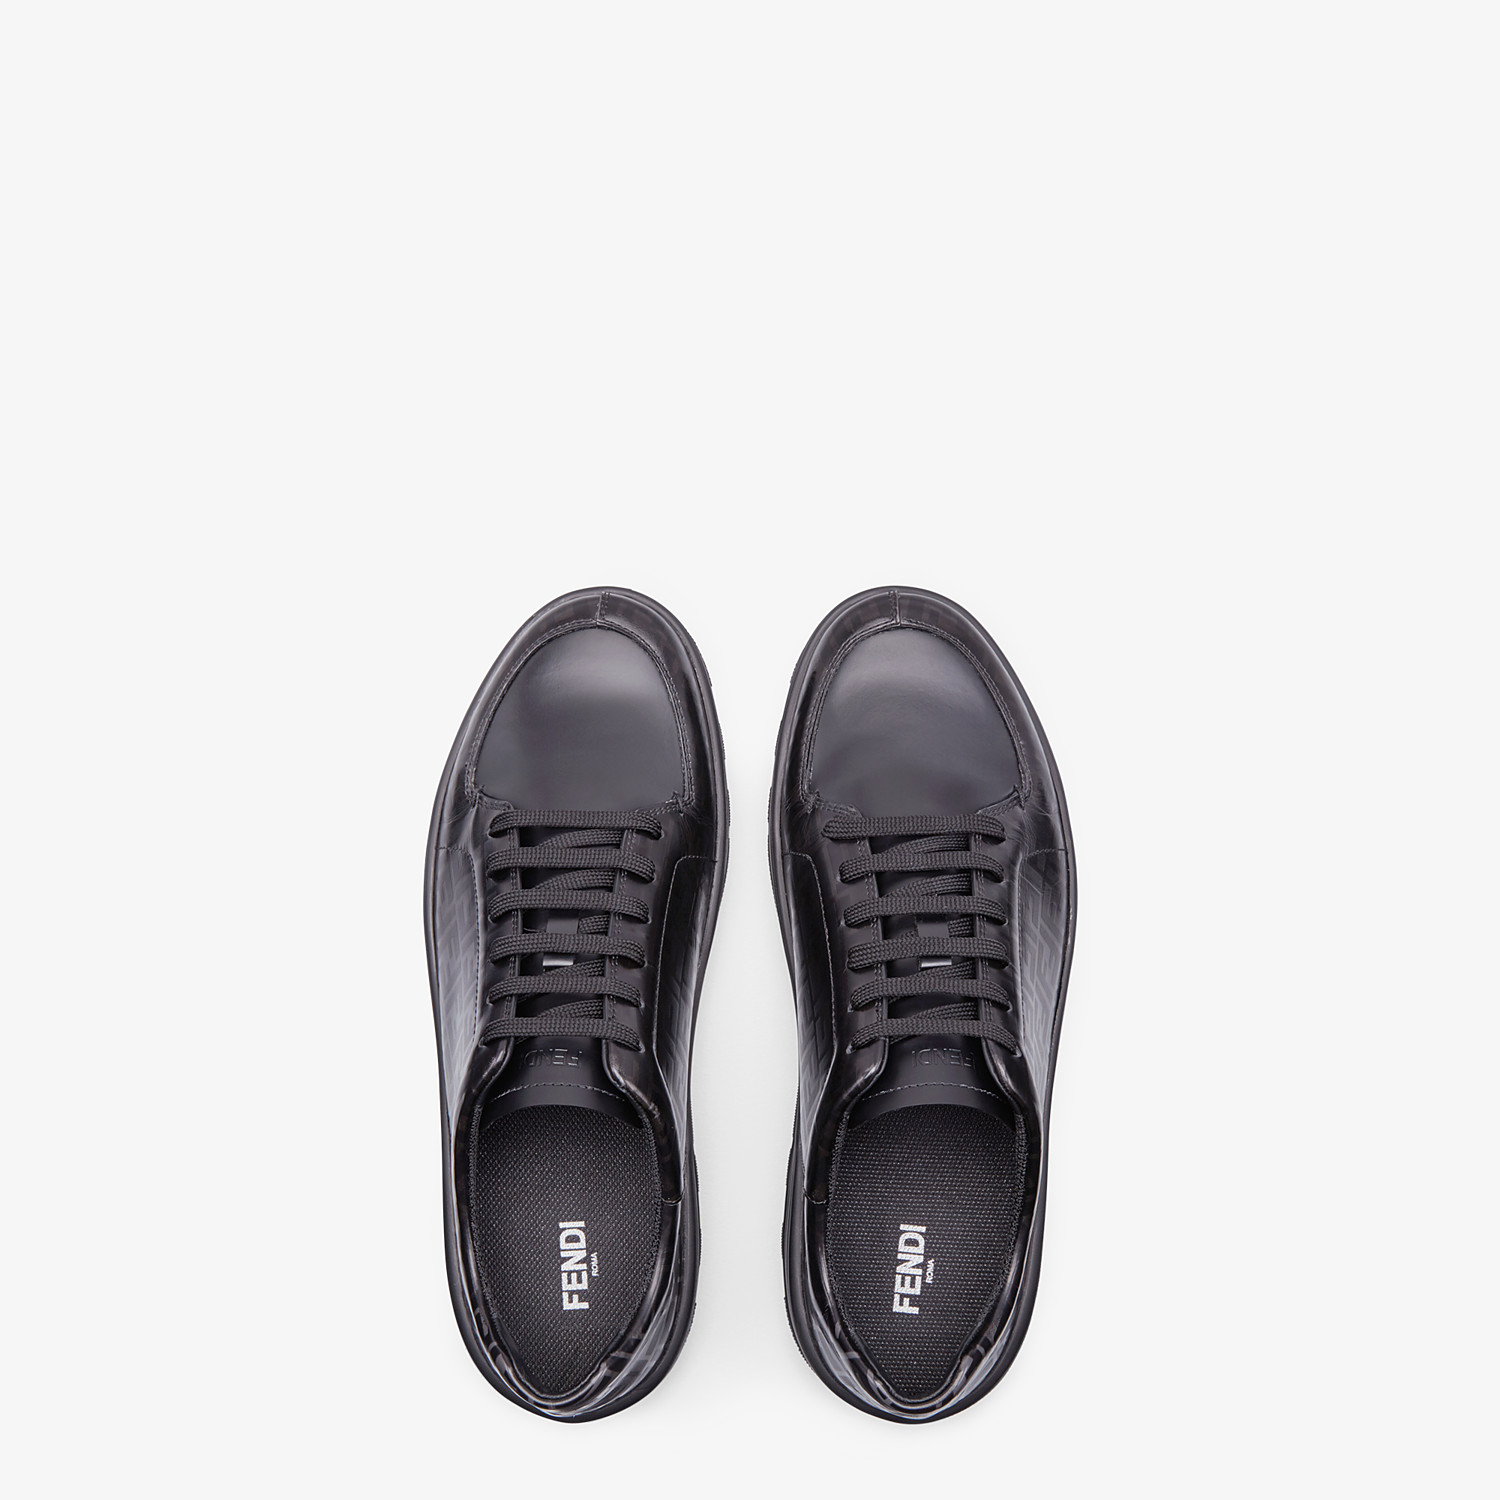 FENDI SNEAKERS - Black leather low-tops - view 4 detail